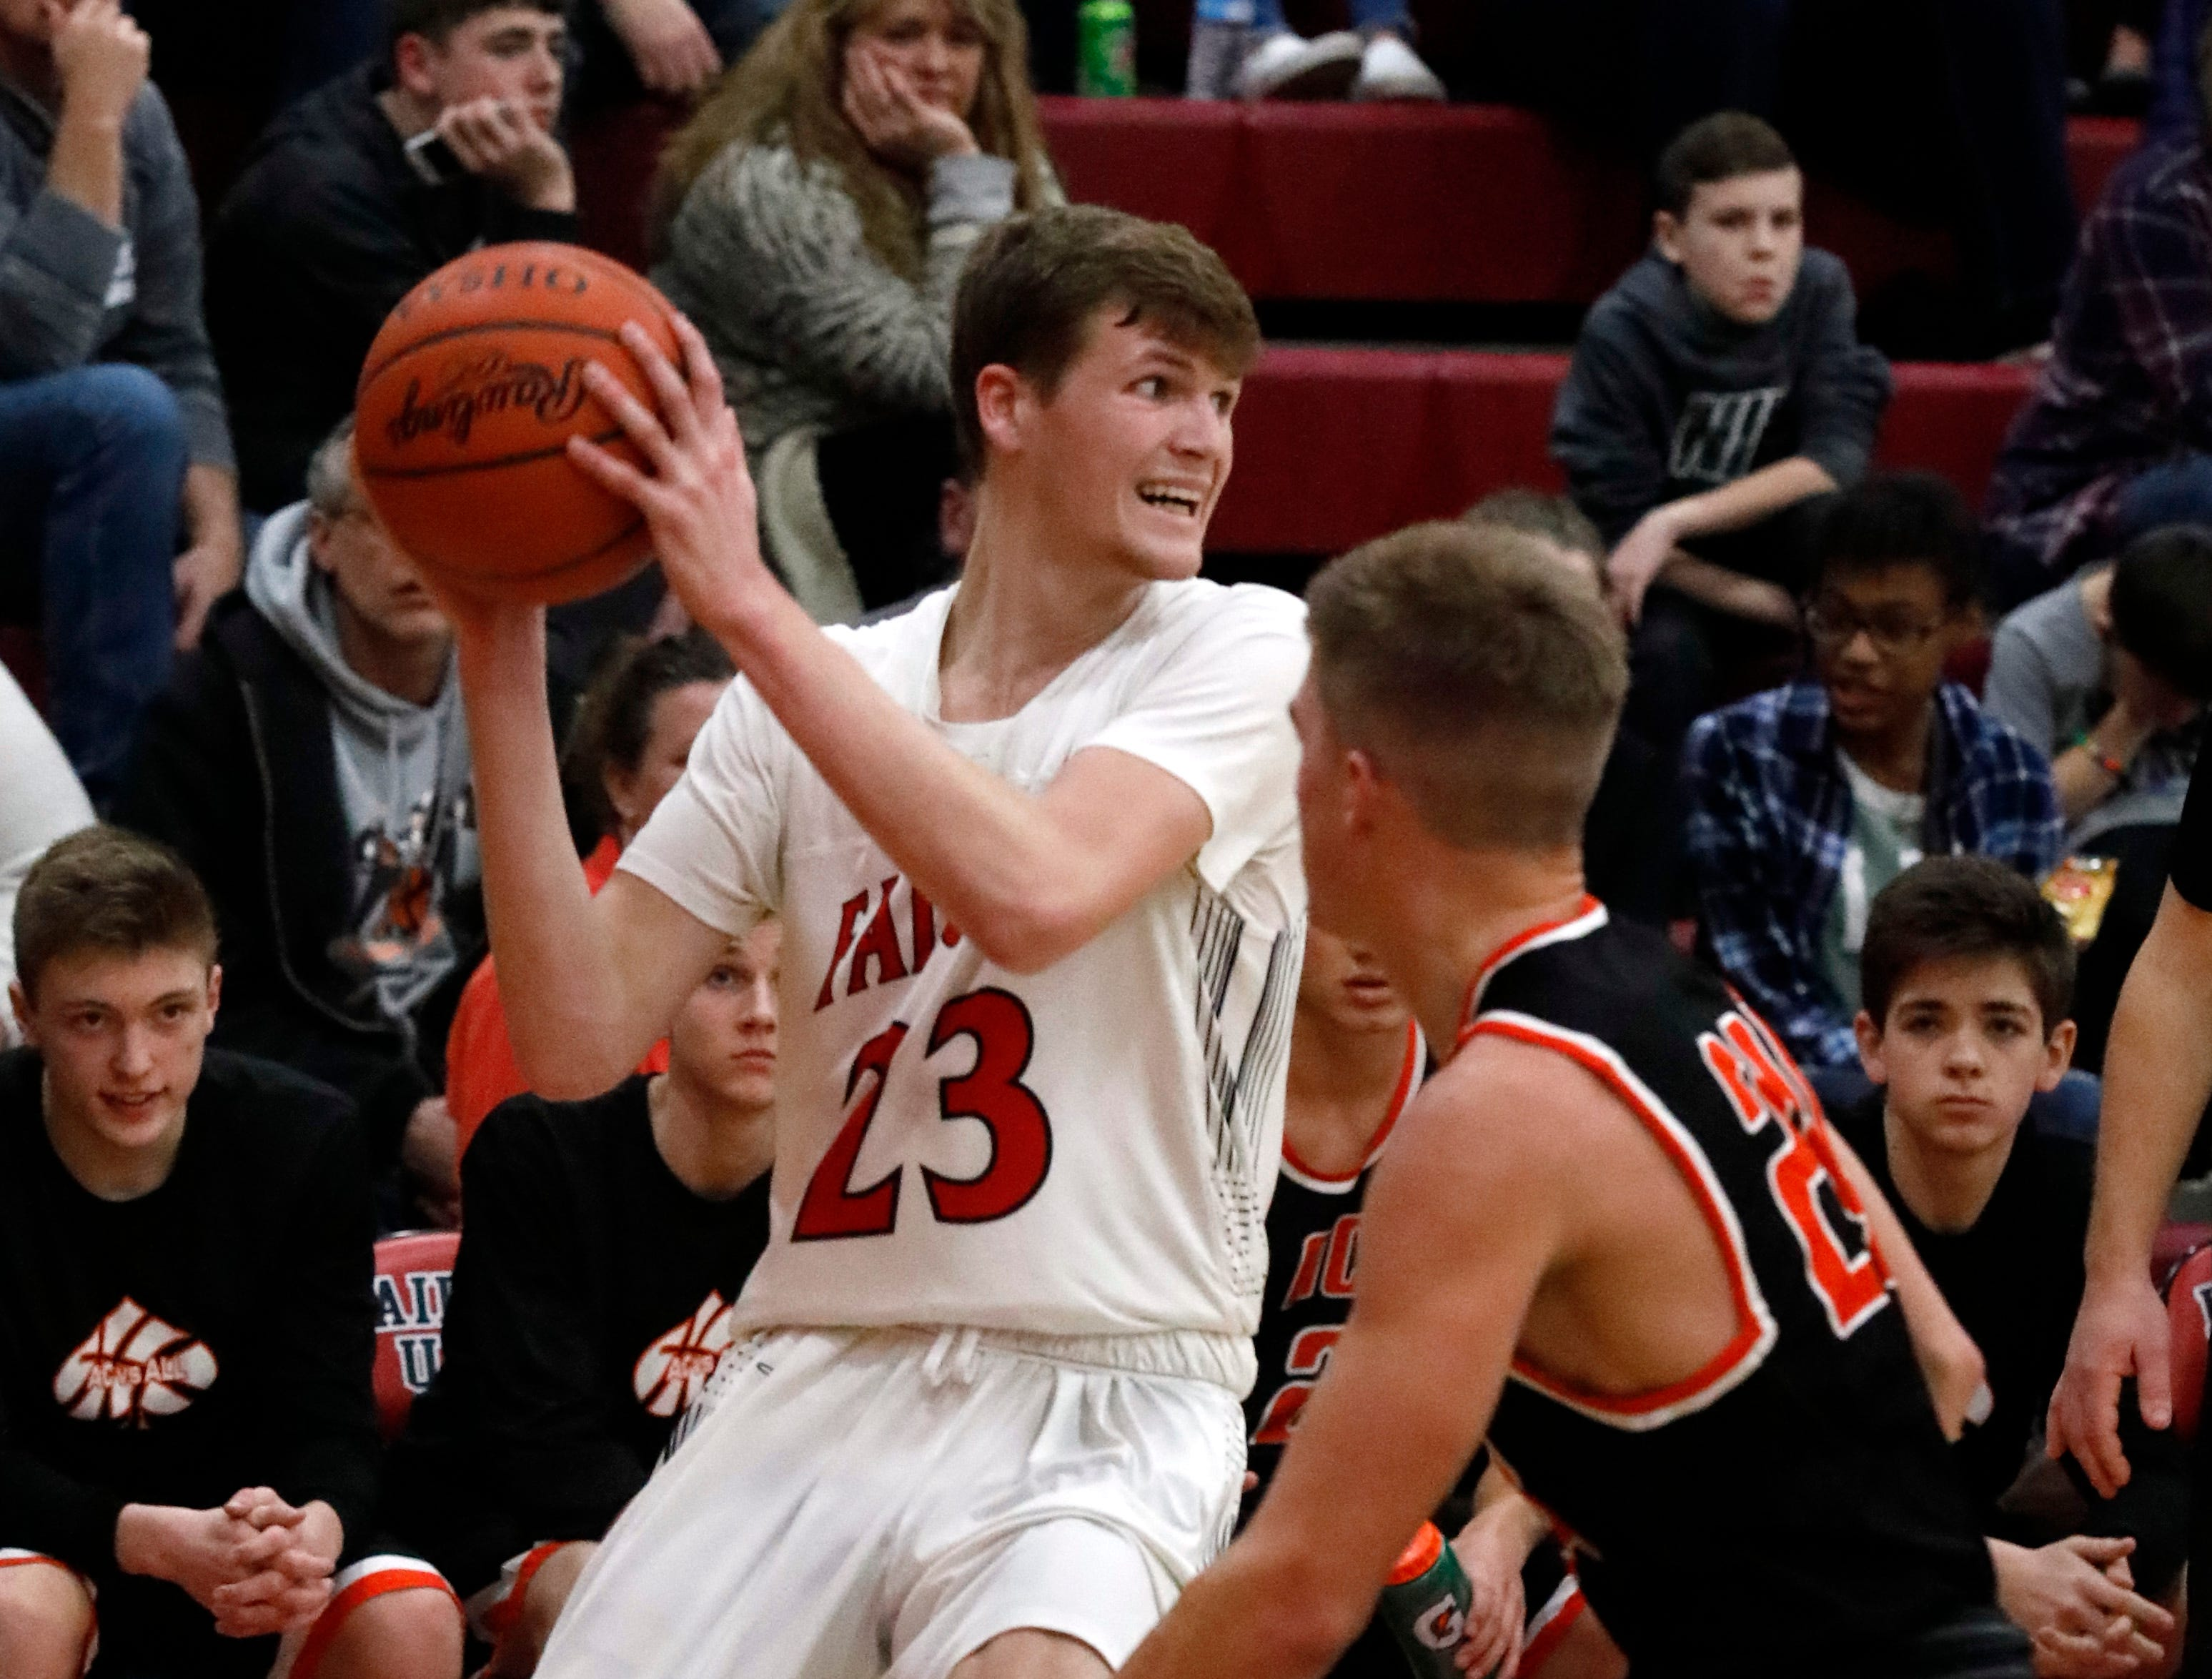 Fairfield Union defeated Amanda-Clearcreek 54-49 Friday night, Jan. 4, 2019, at Fairfield Union High School in Rushville.